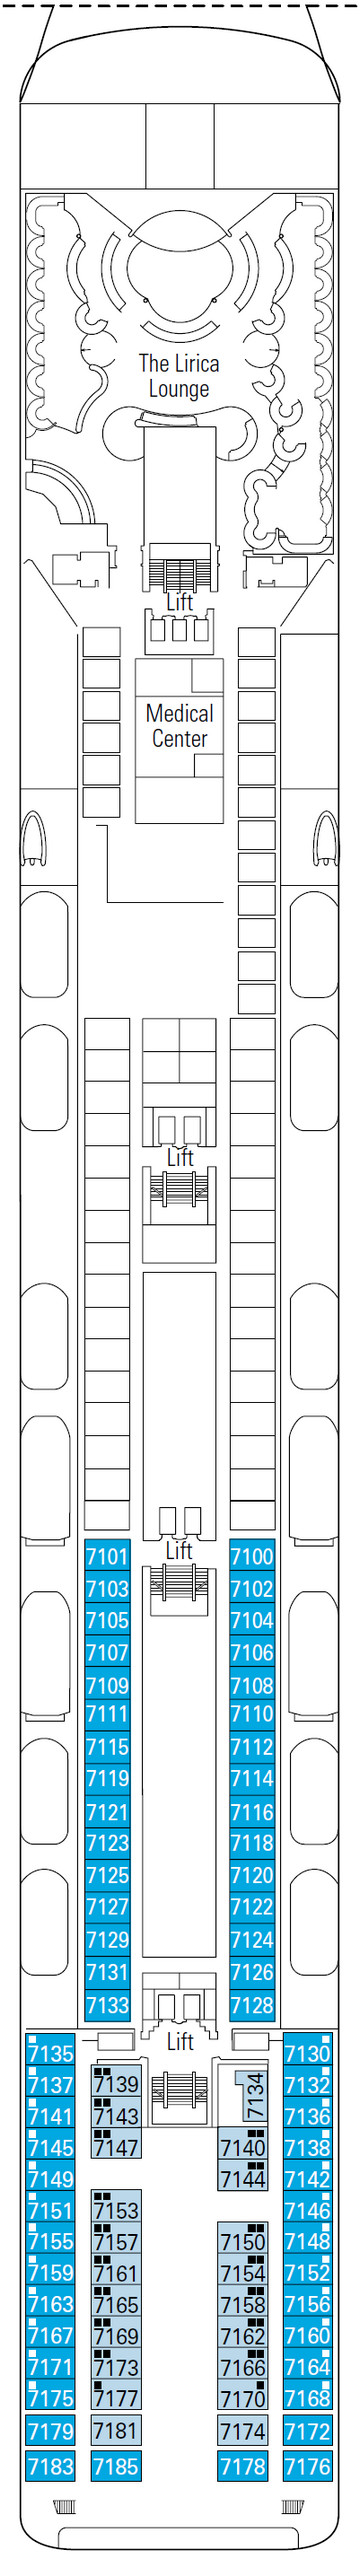 MSC Lirica Scarlatti Deck 7 layout